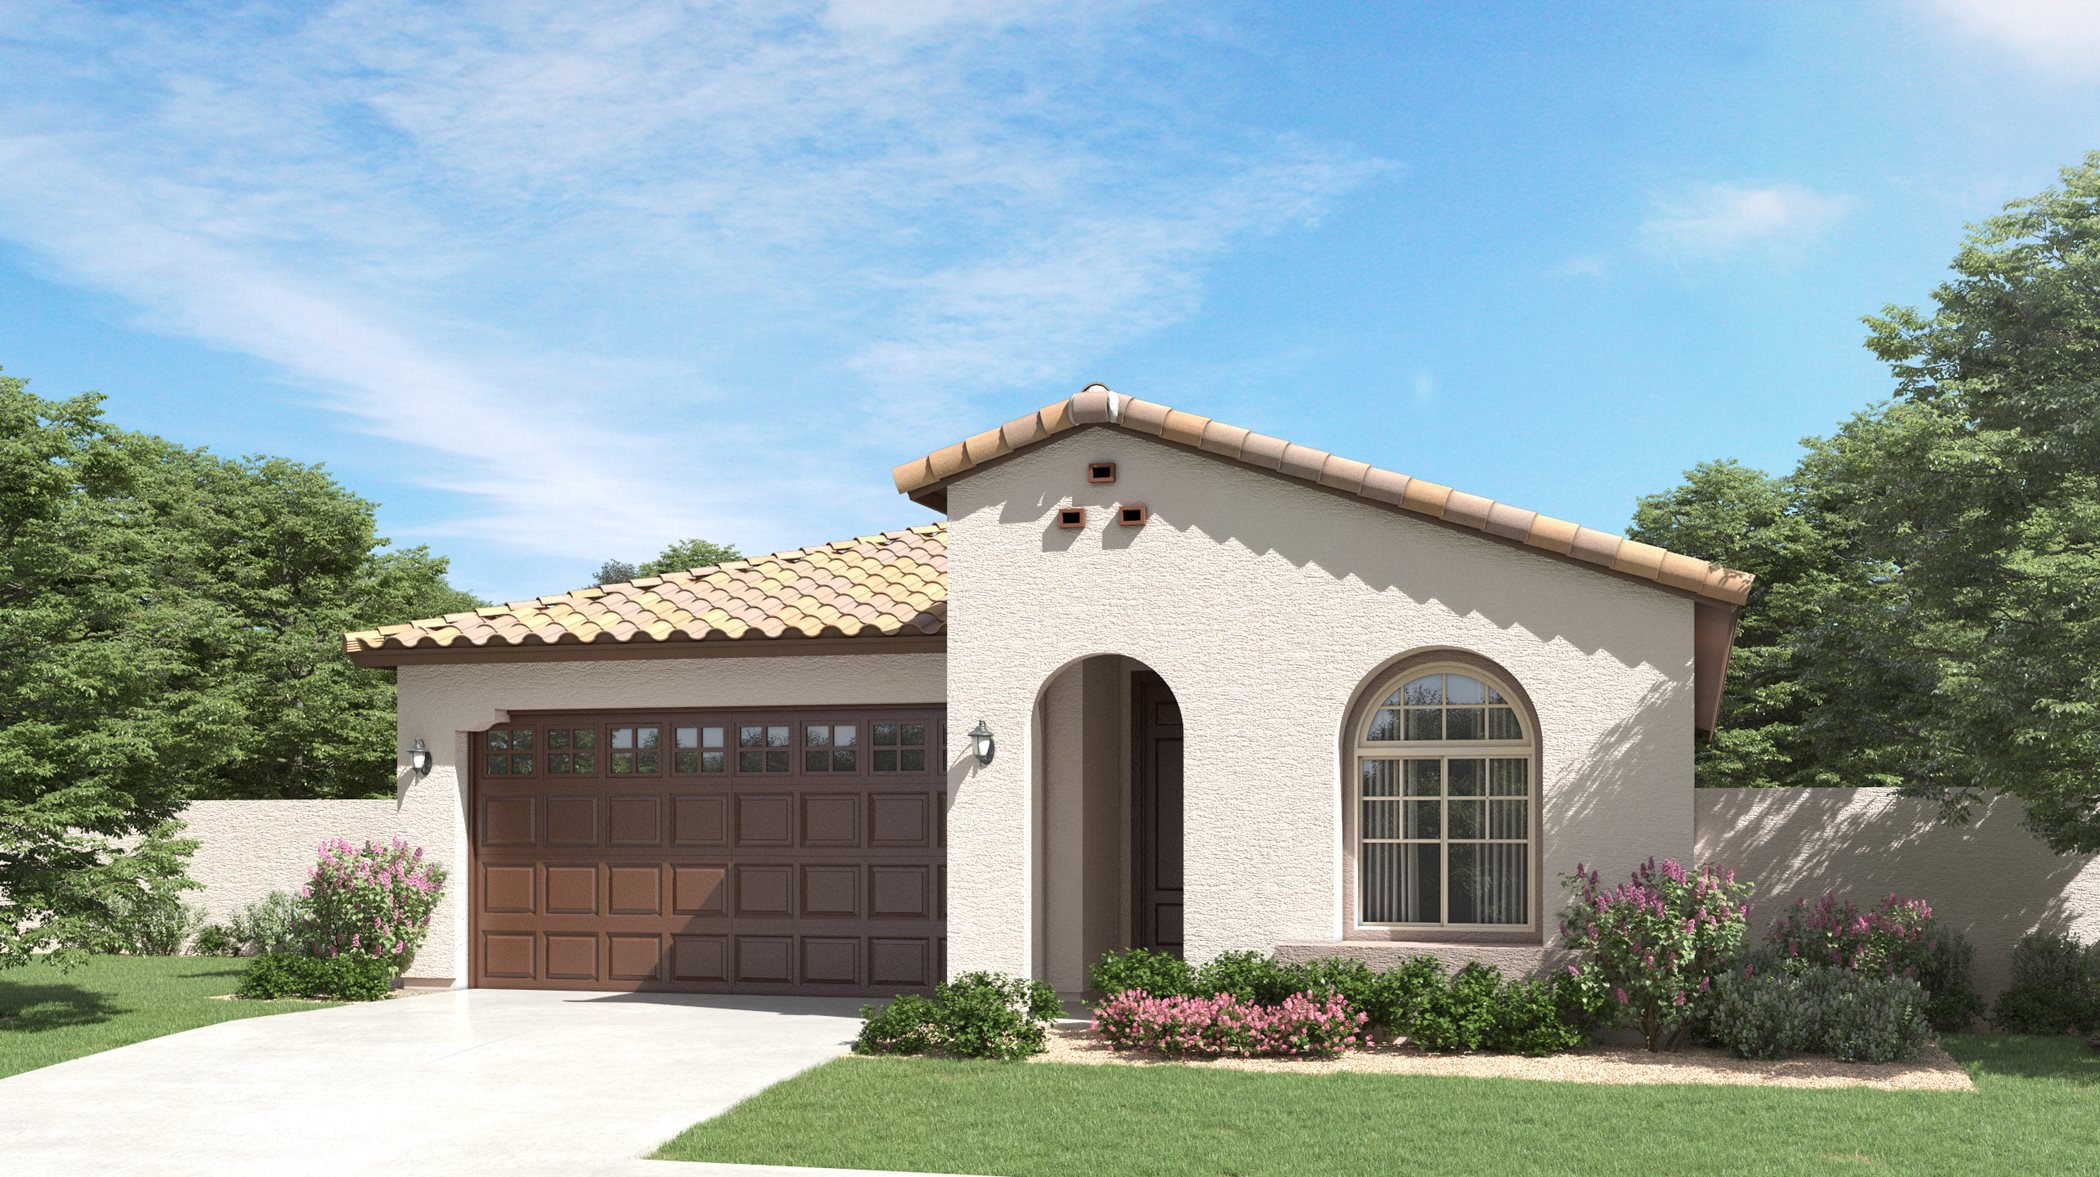 Spanish Colonial Exterior at Discovery at Belrose